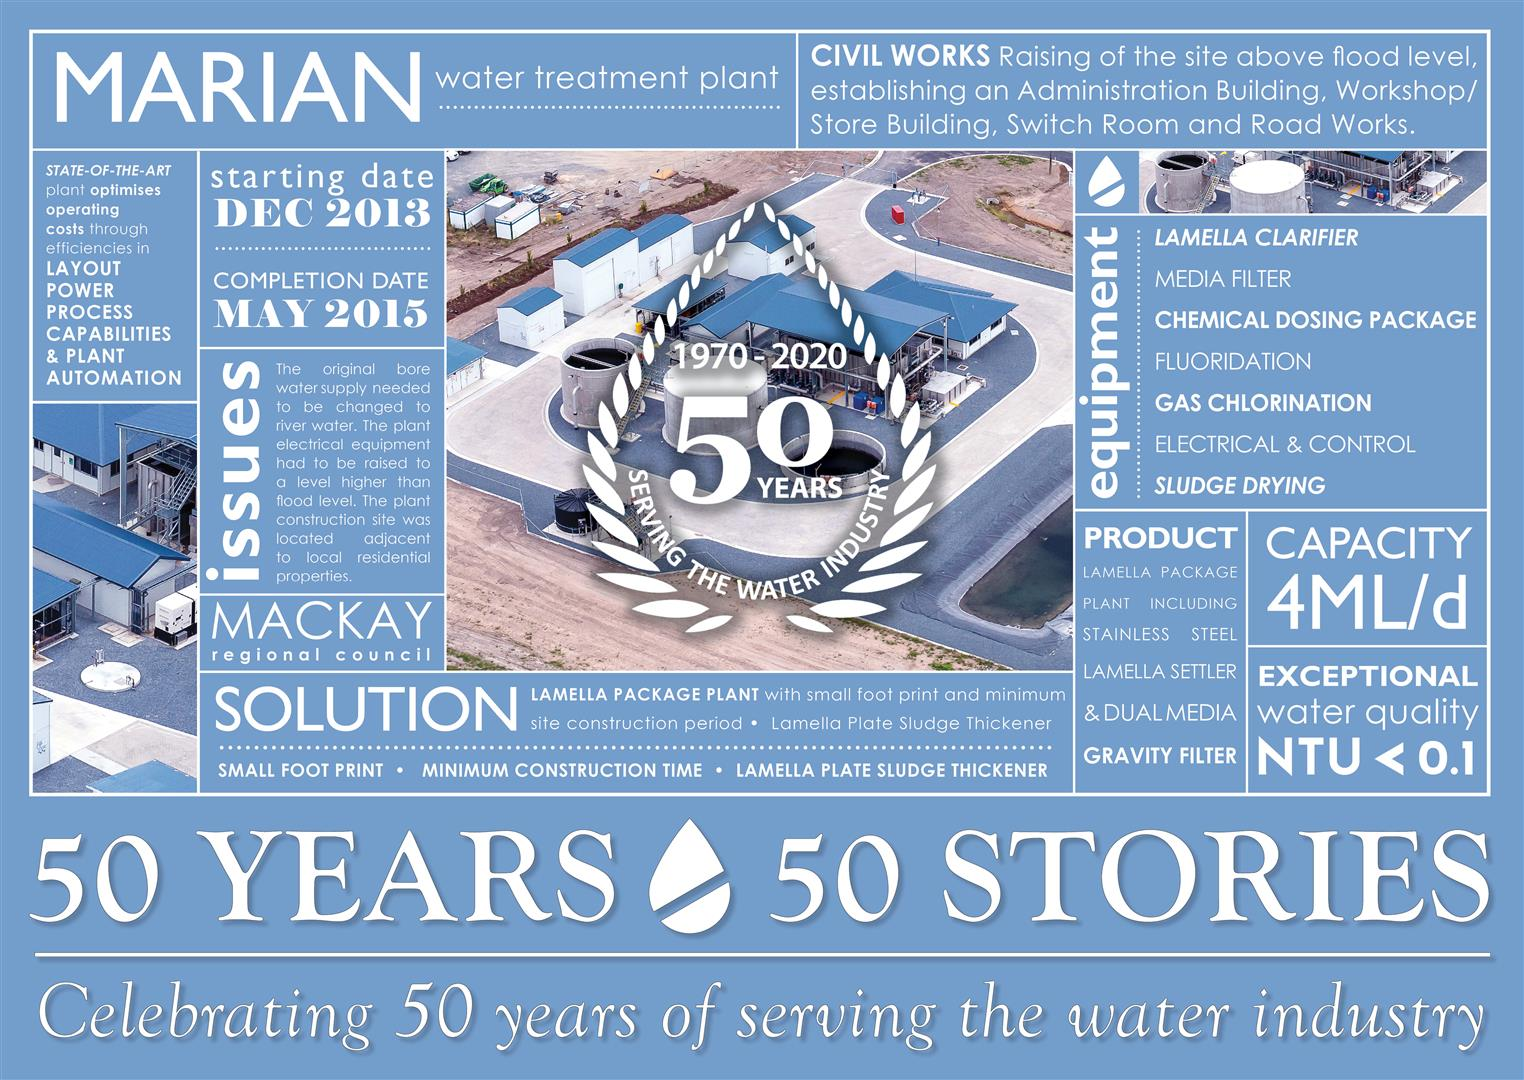 50 Years - 50 Stories: Marian Water Treatment Plant - The second best-tasting water in the World!